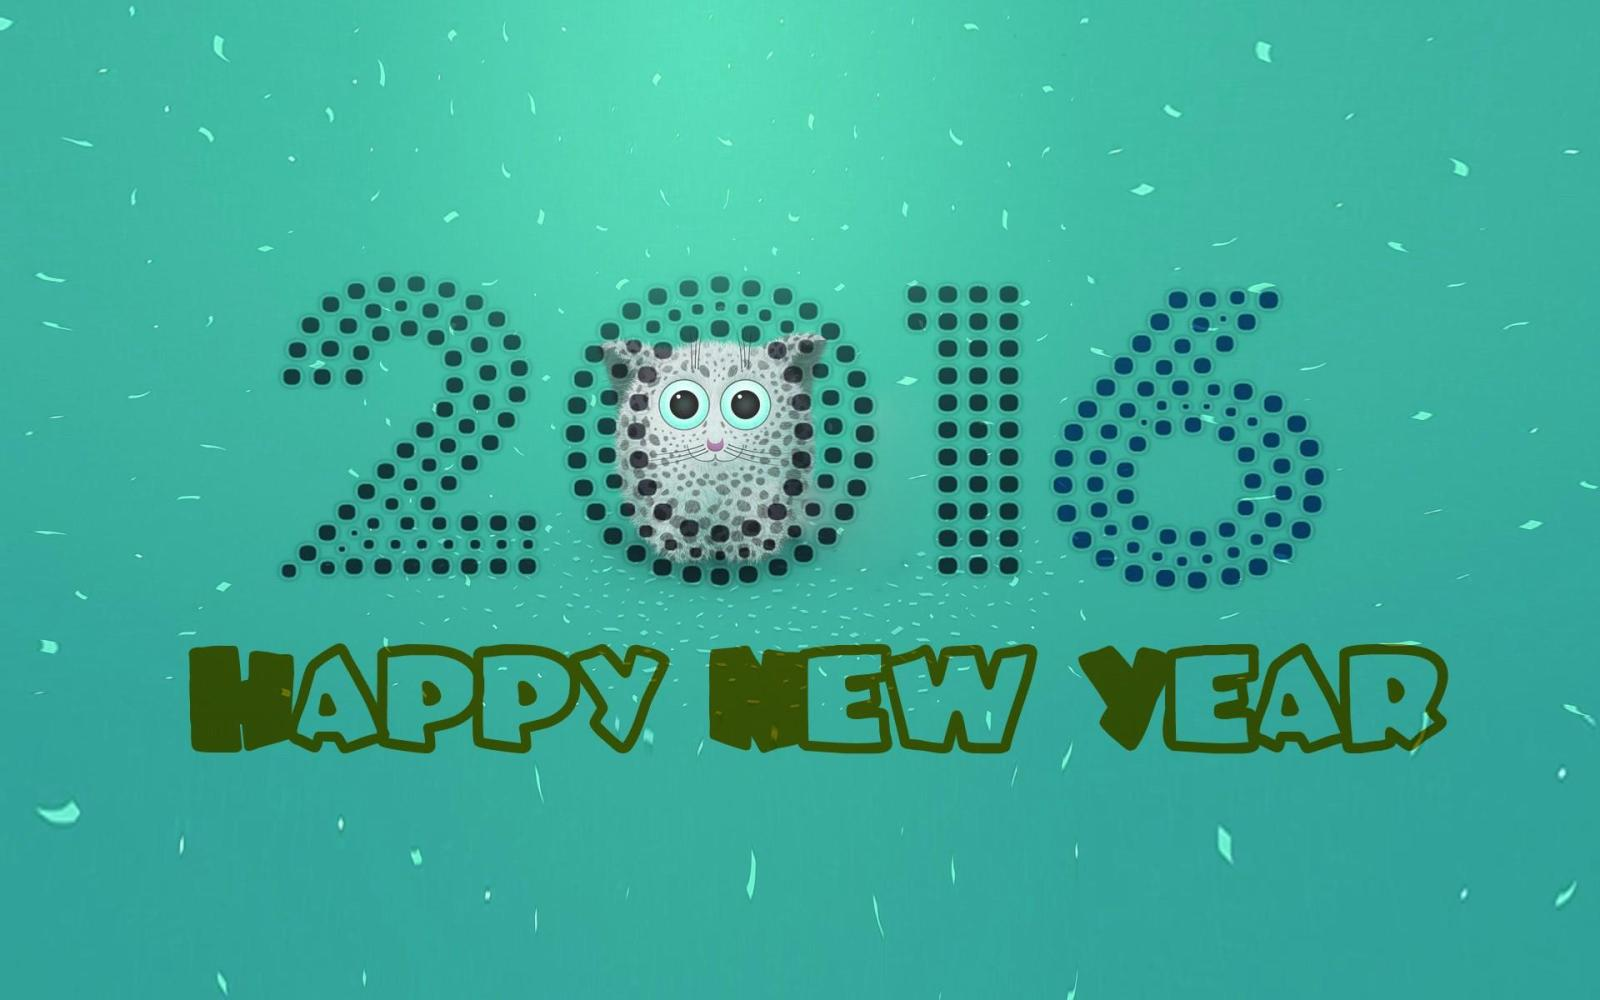 Happy new year 2018 hd wallpaper images free download su for New design wallpaper 2016